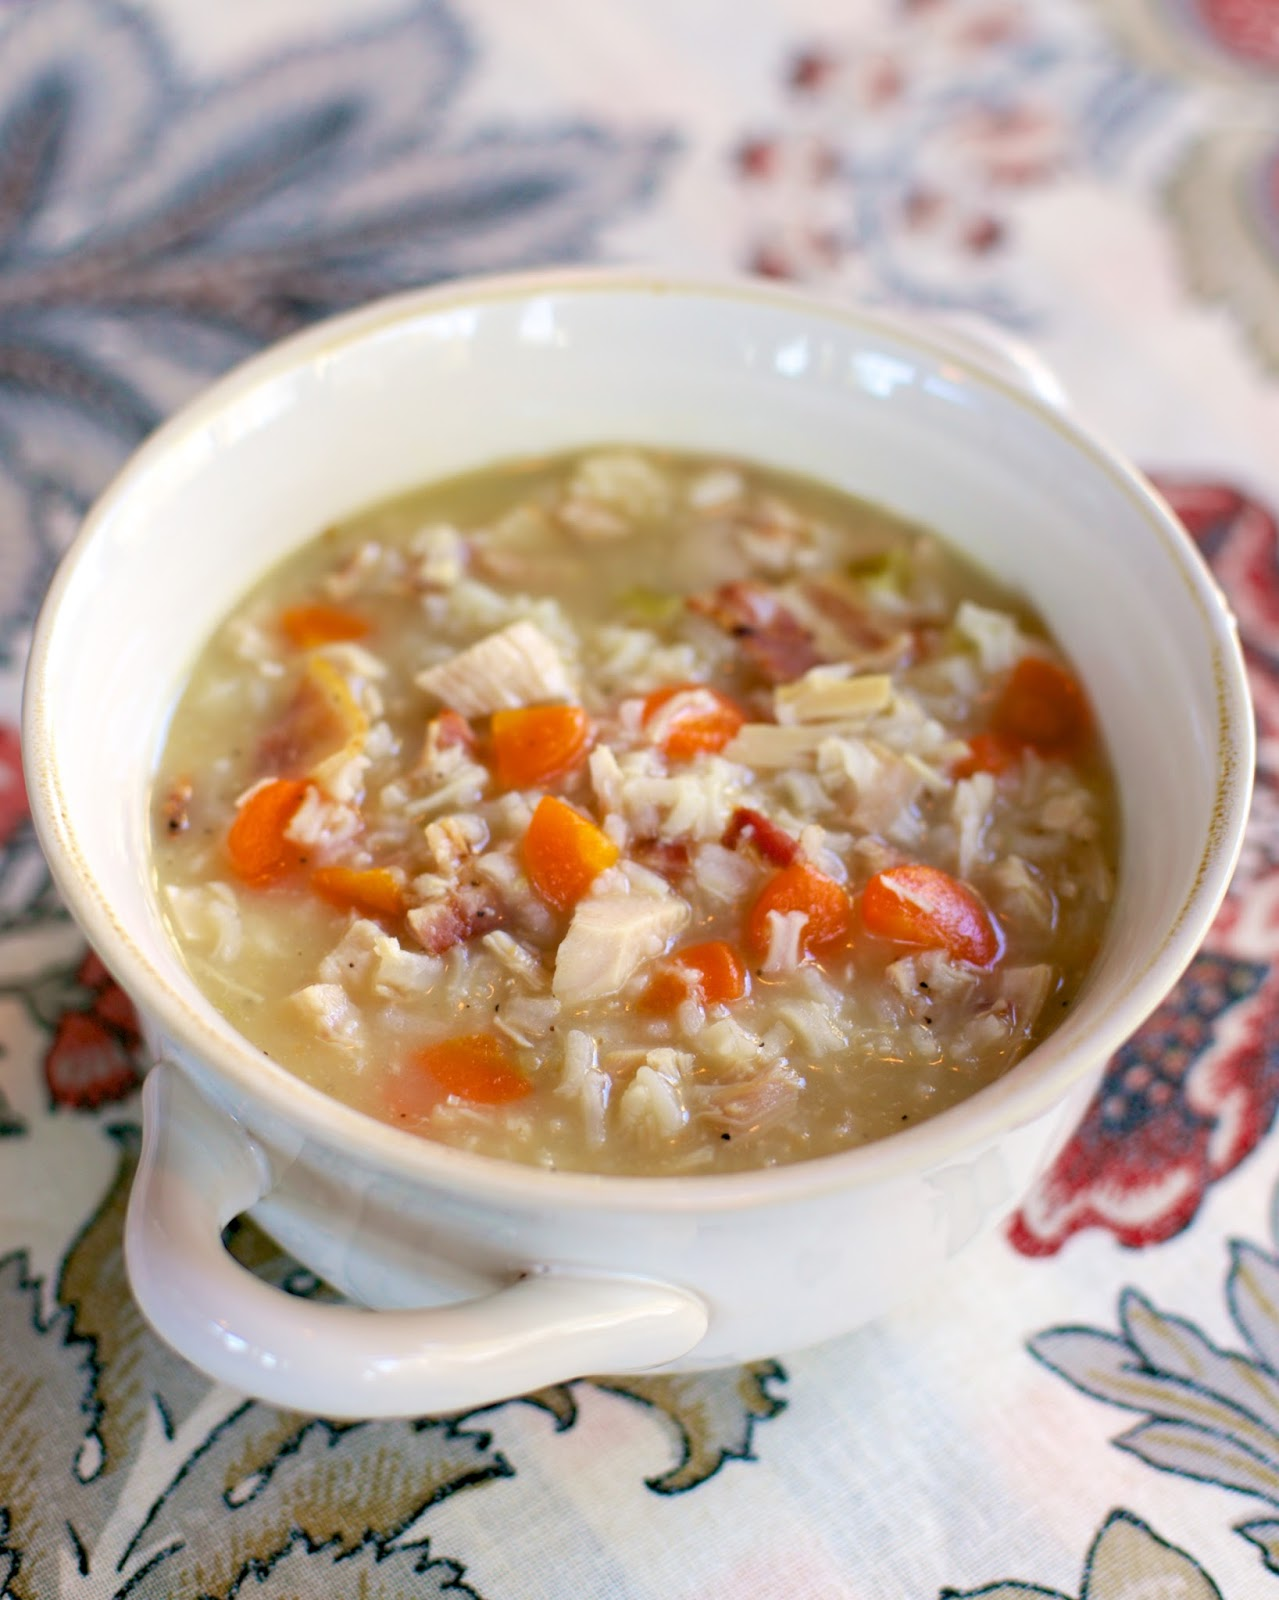 Chicken, Bacon & Rice Soup recipe - chicken broth, water, rice, cream of celery soup, carrots, bacon and chicken - use a rotisserie chicken and this soup is ready in 20 minutes! Just dump everything in the pot, bring to a boil and simmer. So easy and super delicious! Can also use uncooked chicken breast and make in the slow cooker.